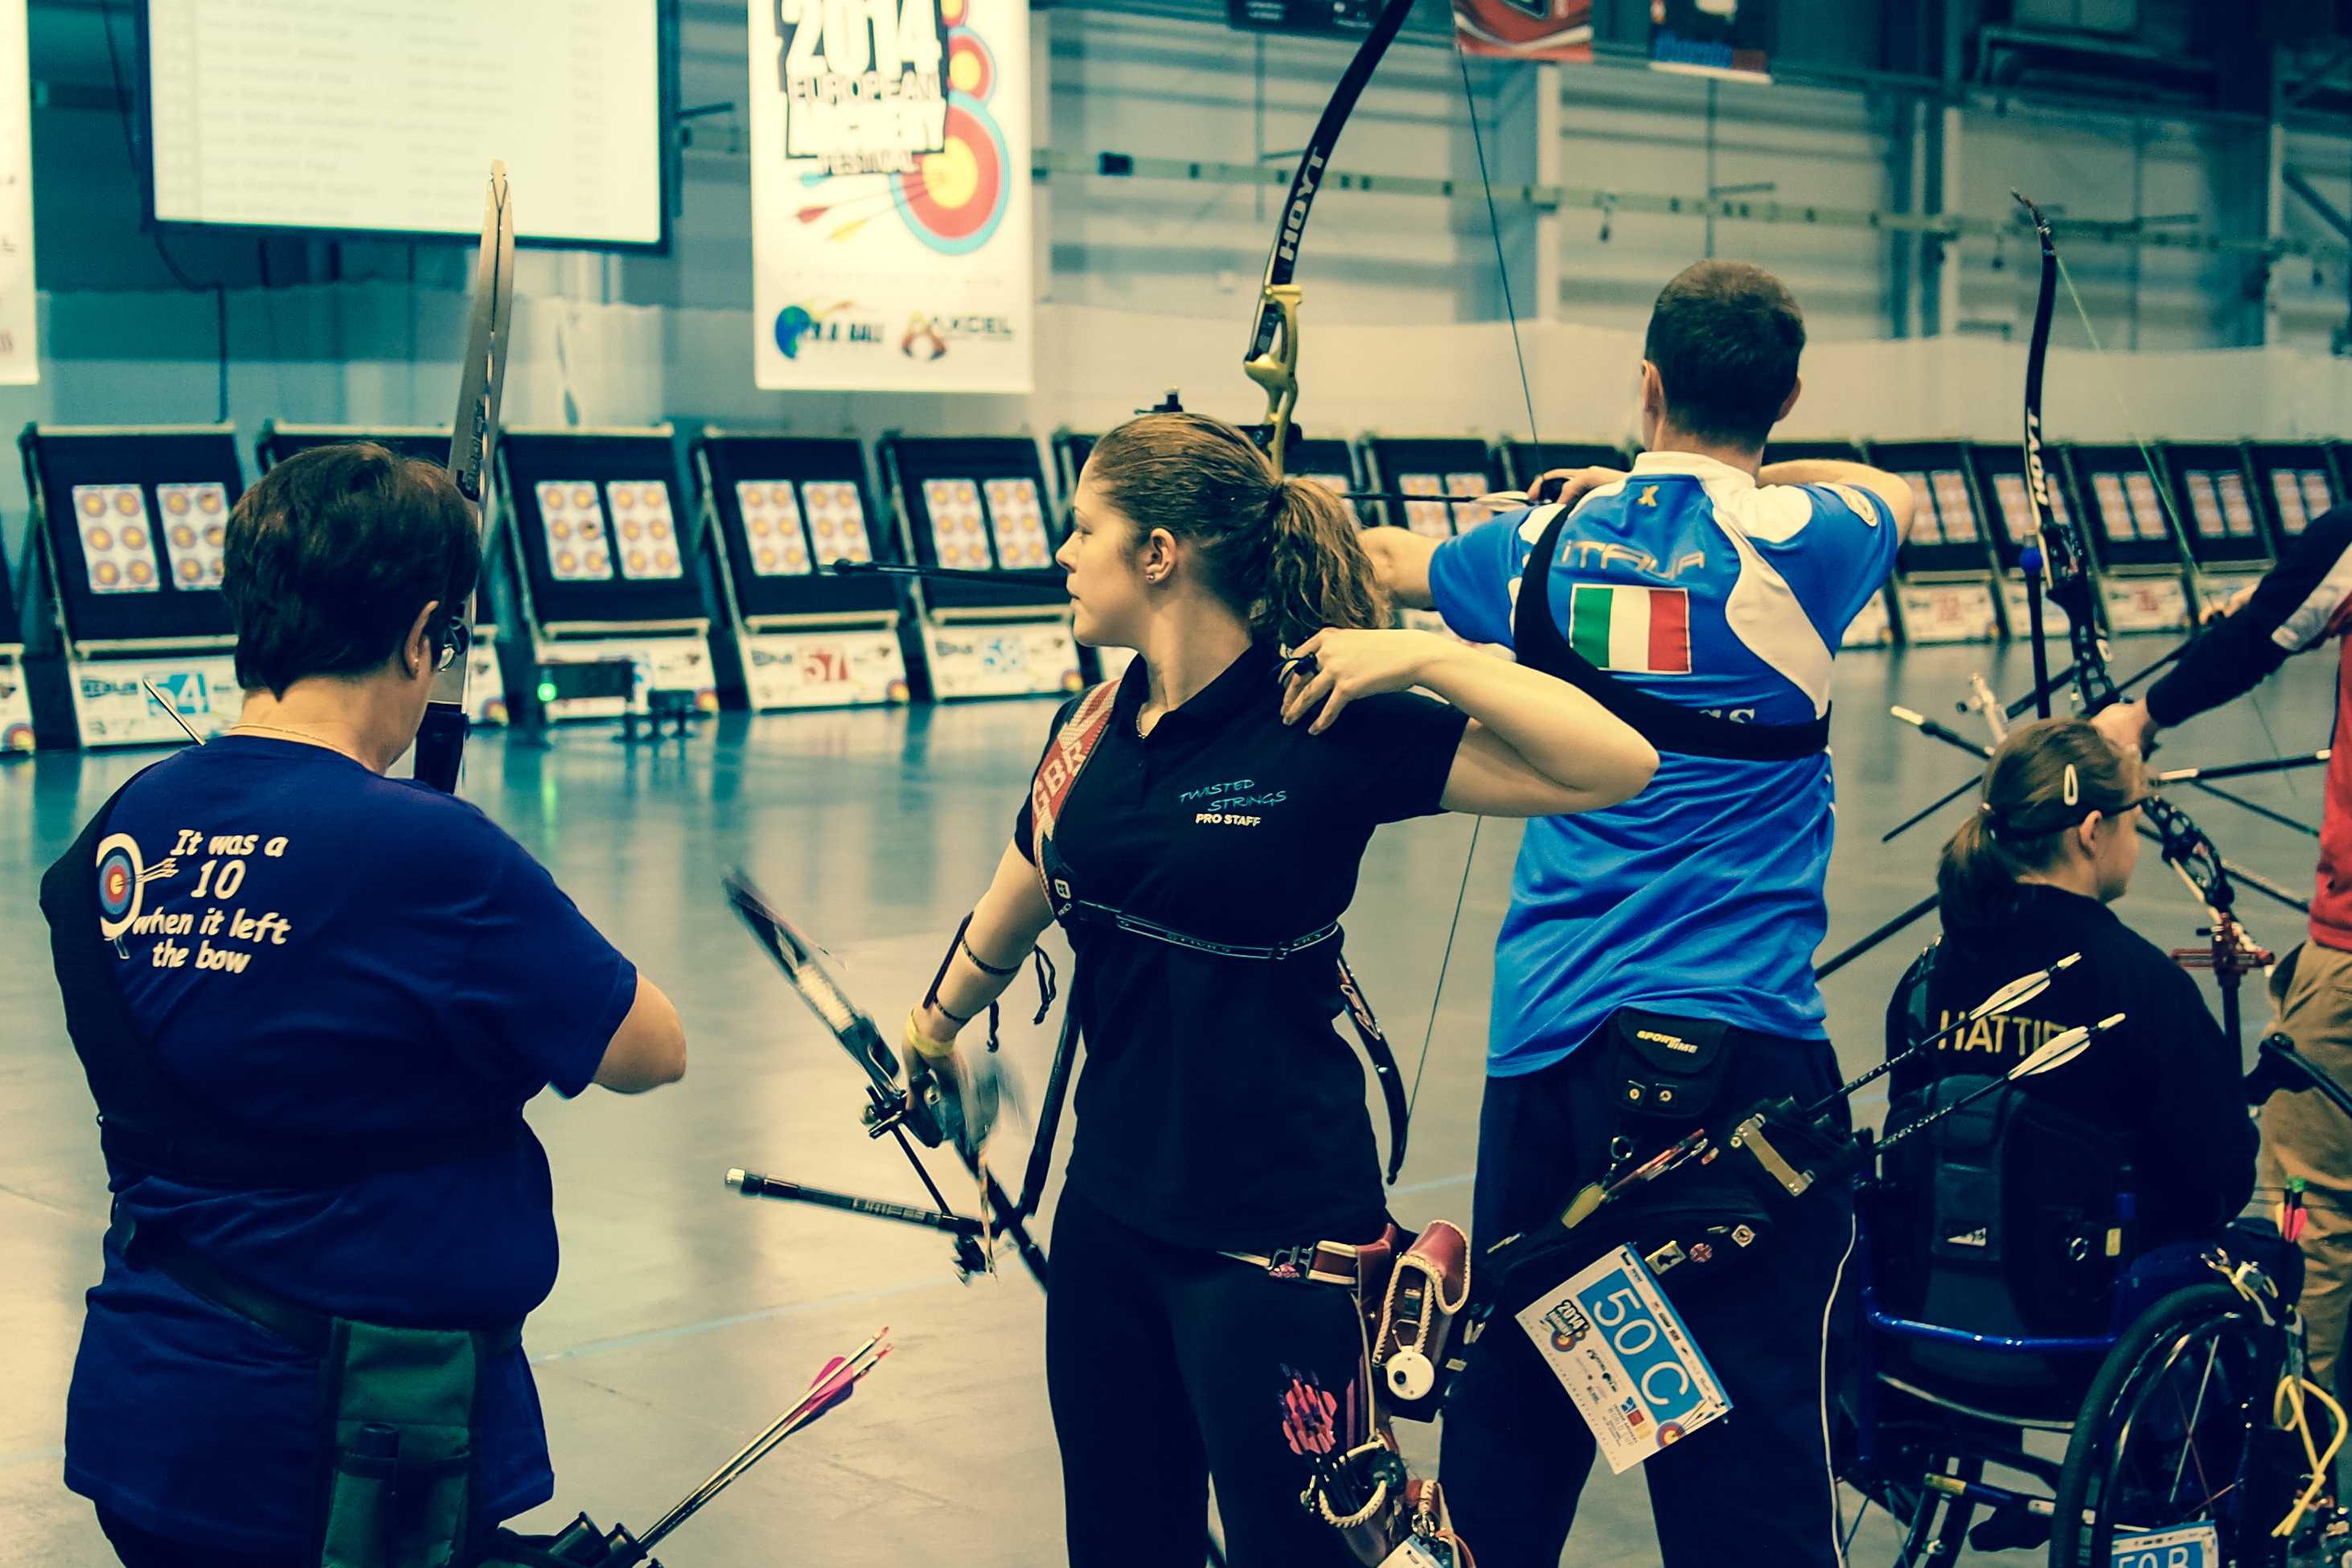 Becky Martin. 2014 European Archery Festival. © 2014 The Infinite Curve